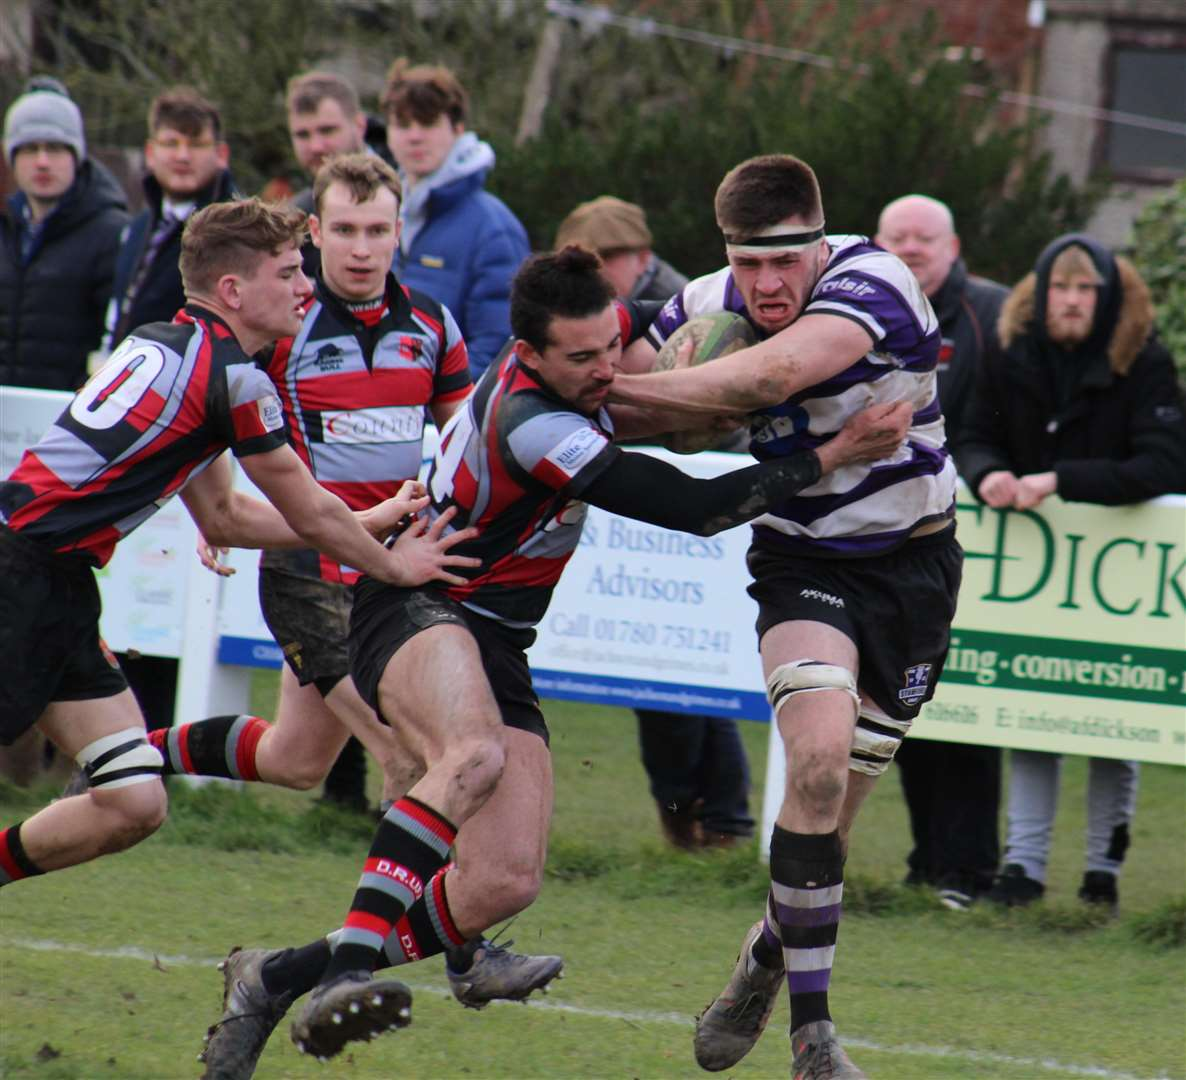 Match action from Stamford's victory over Dunstablians on Saturday. Photo: Darren Dolby (6800353)